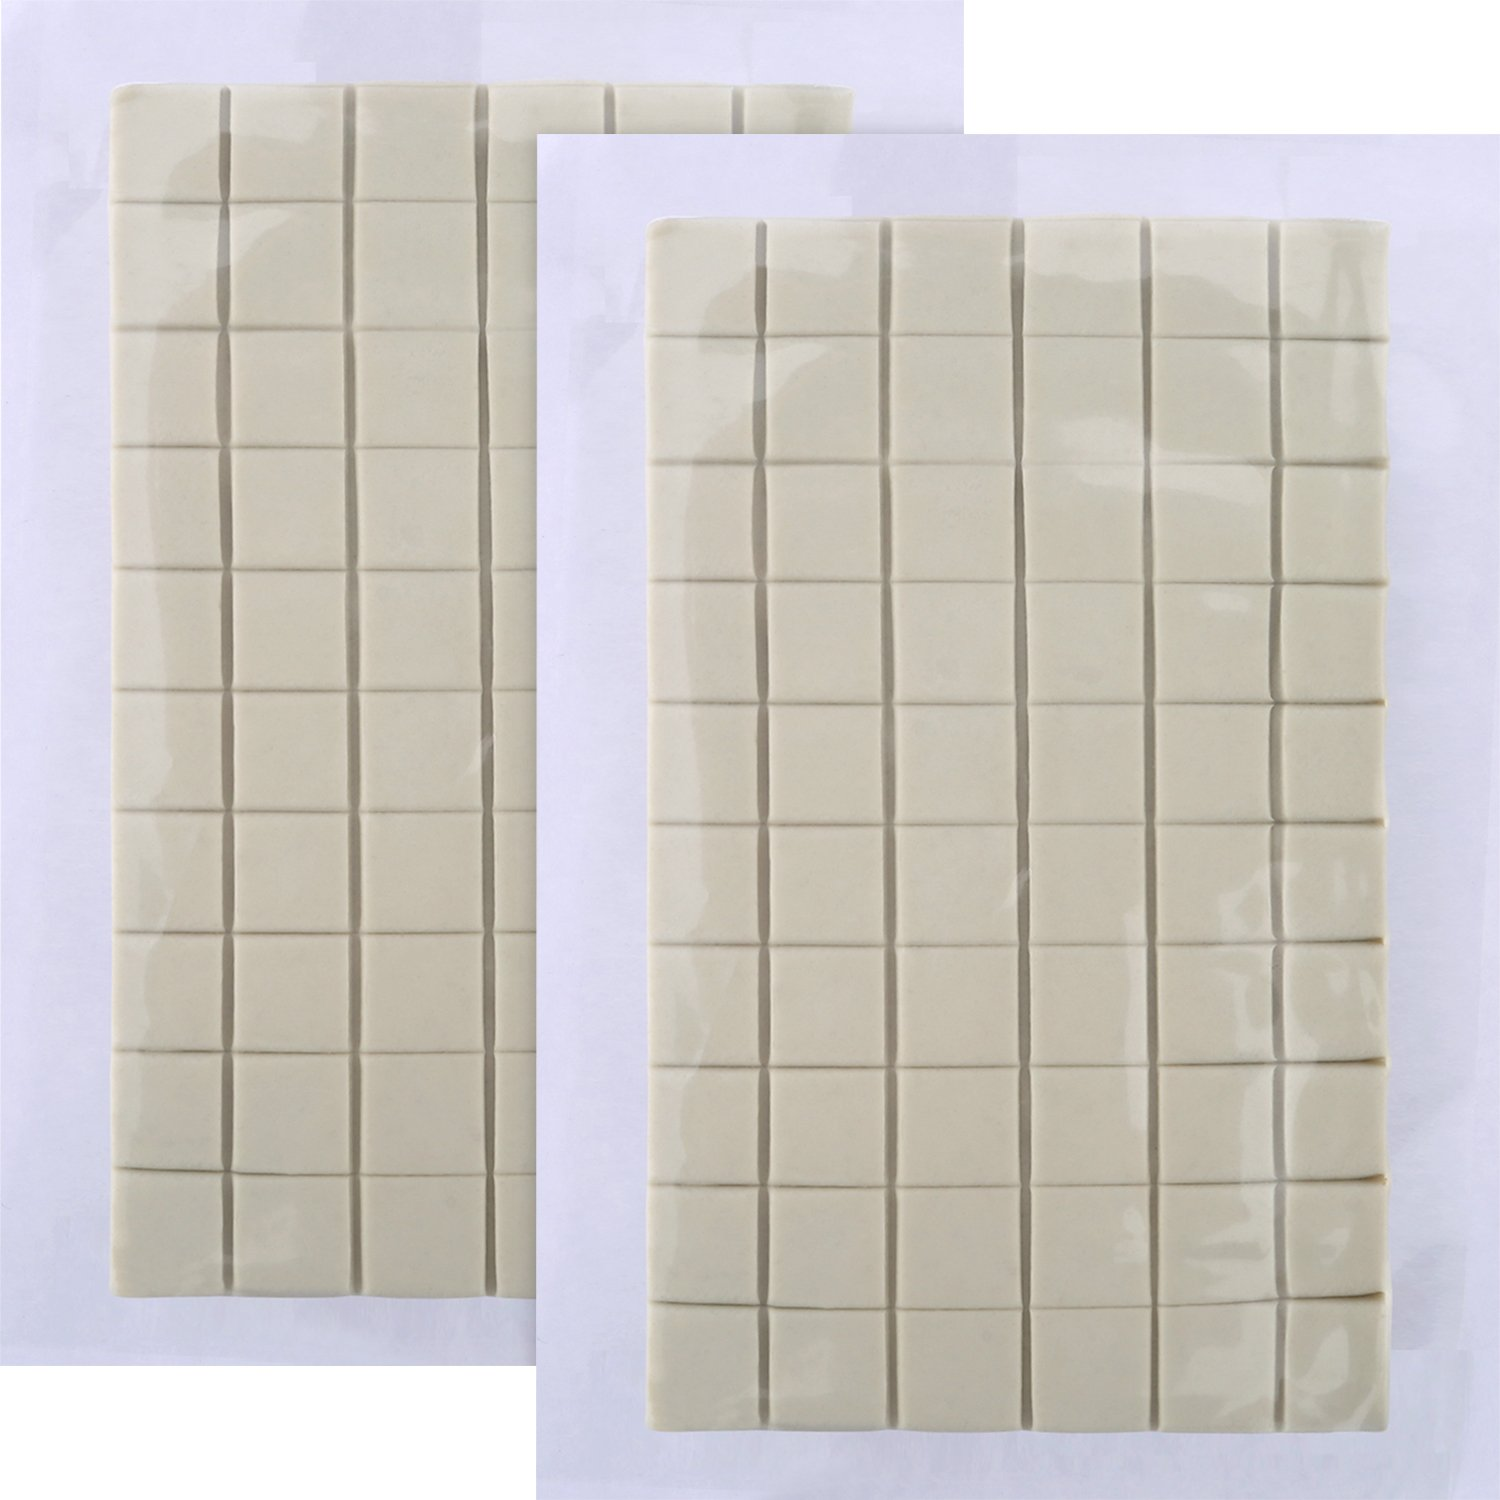 Bememo 2 Pack Adhesive Putty Reusable Removable Sticky Tack Poster Non Toxic Tape Dry Adhesive Sticky Putty